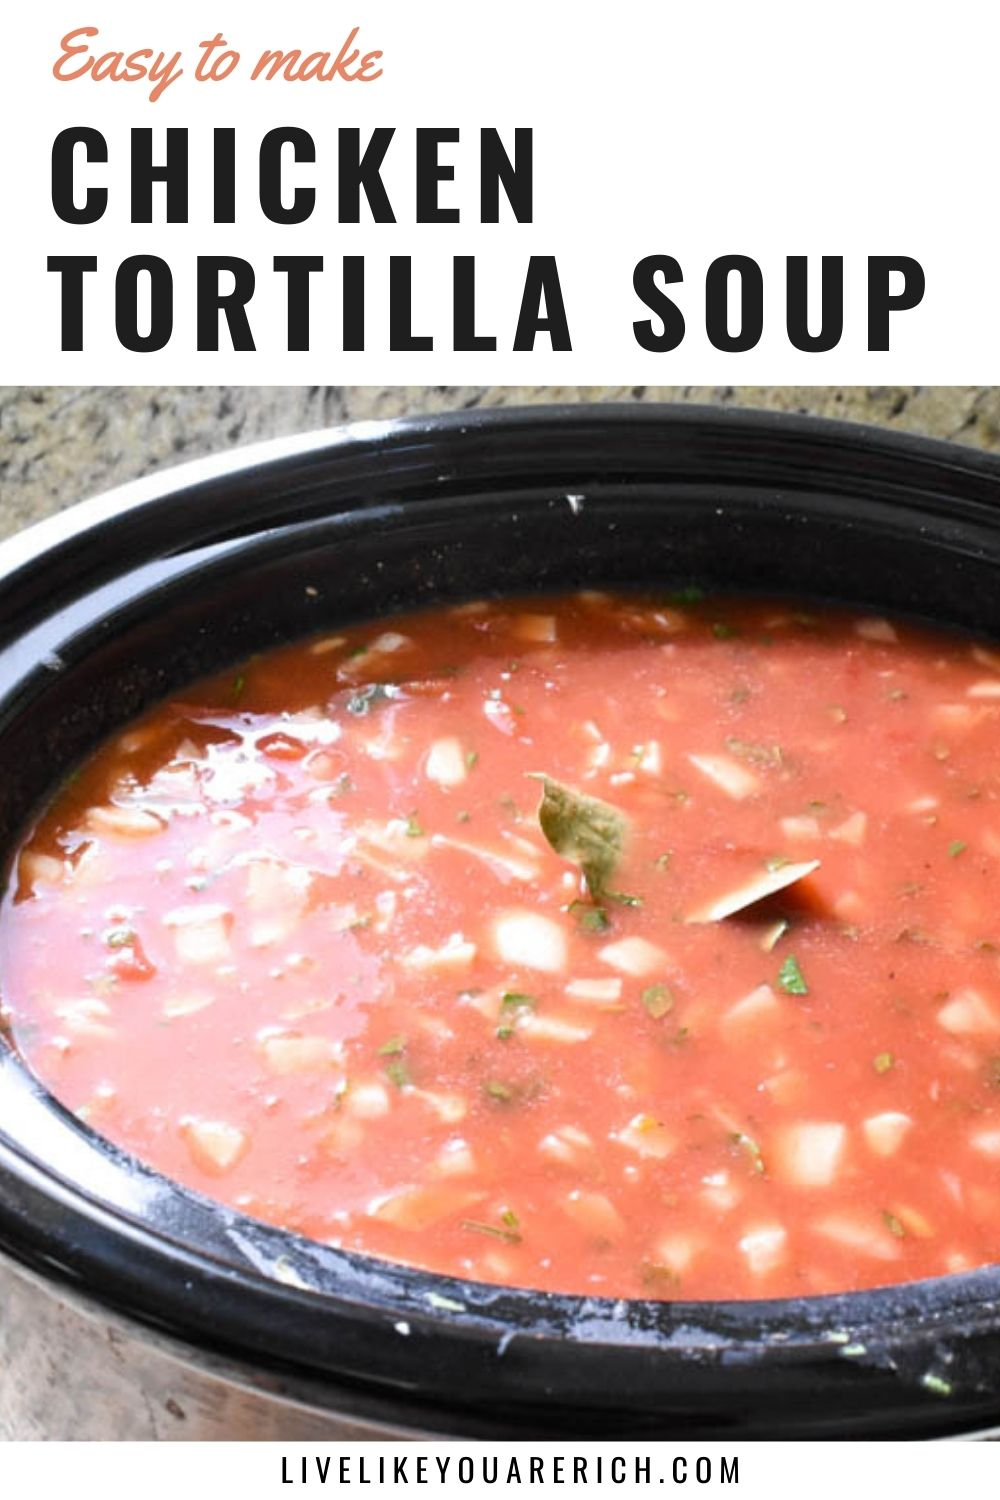 This is an amazing recipe for Slow Cooker Chicken Tortilla Soup. Not only is it an easy meal to prepare (10 or so minutes), it is so tasty, versatile, and healthy. Because families have varying spice tolerance, I've included instructions for the Mild, Medium, and Hot versions. #chickentortillasoup #slowcookerrecipe